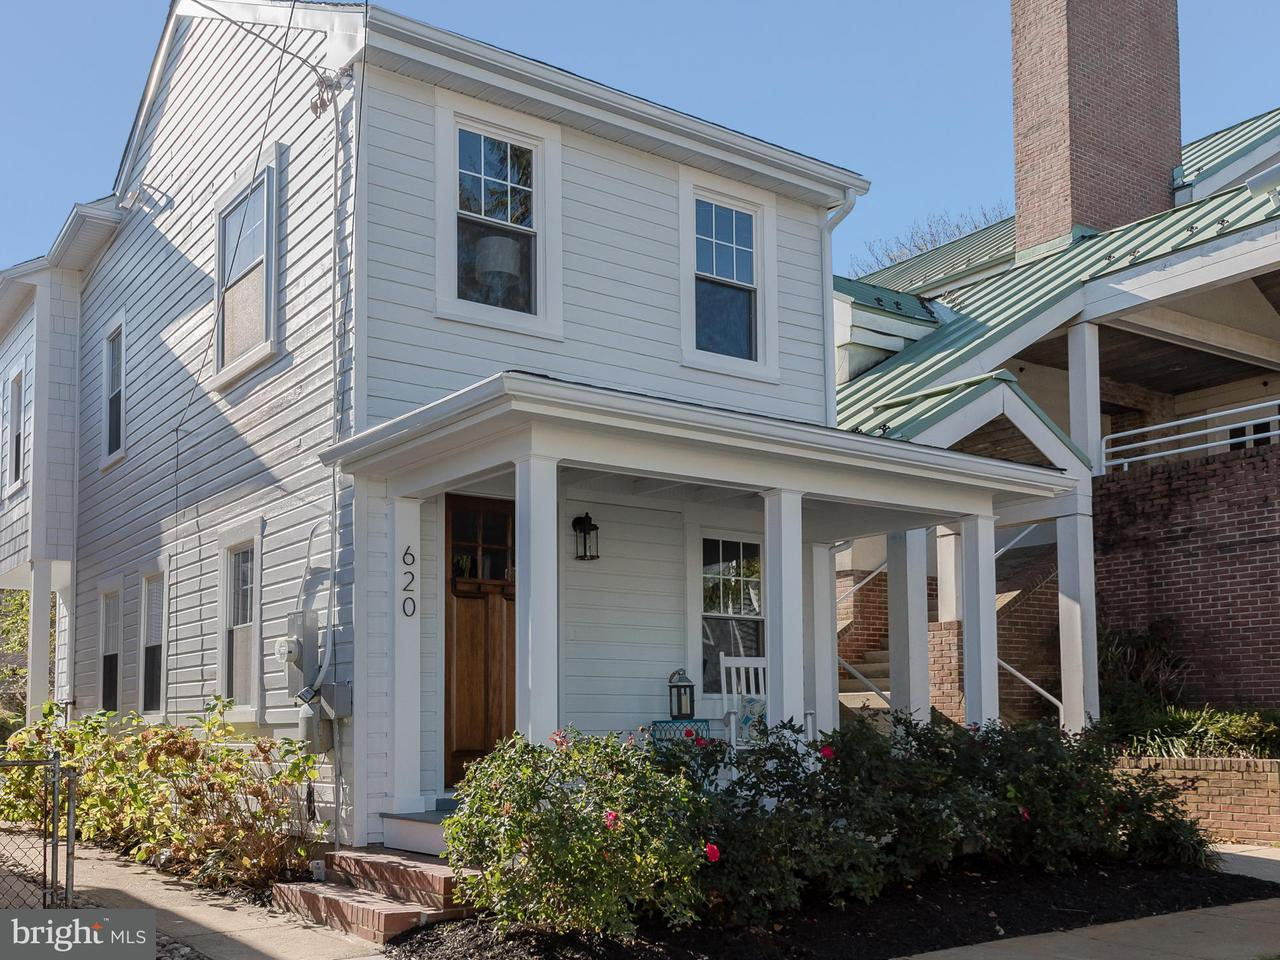 Single Family Home for Sale at 620 2nd Street 620 2nd Street Annapolis, Maryland 21403 United States